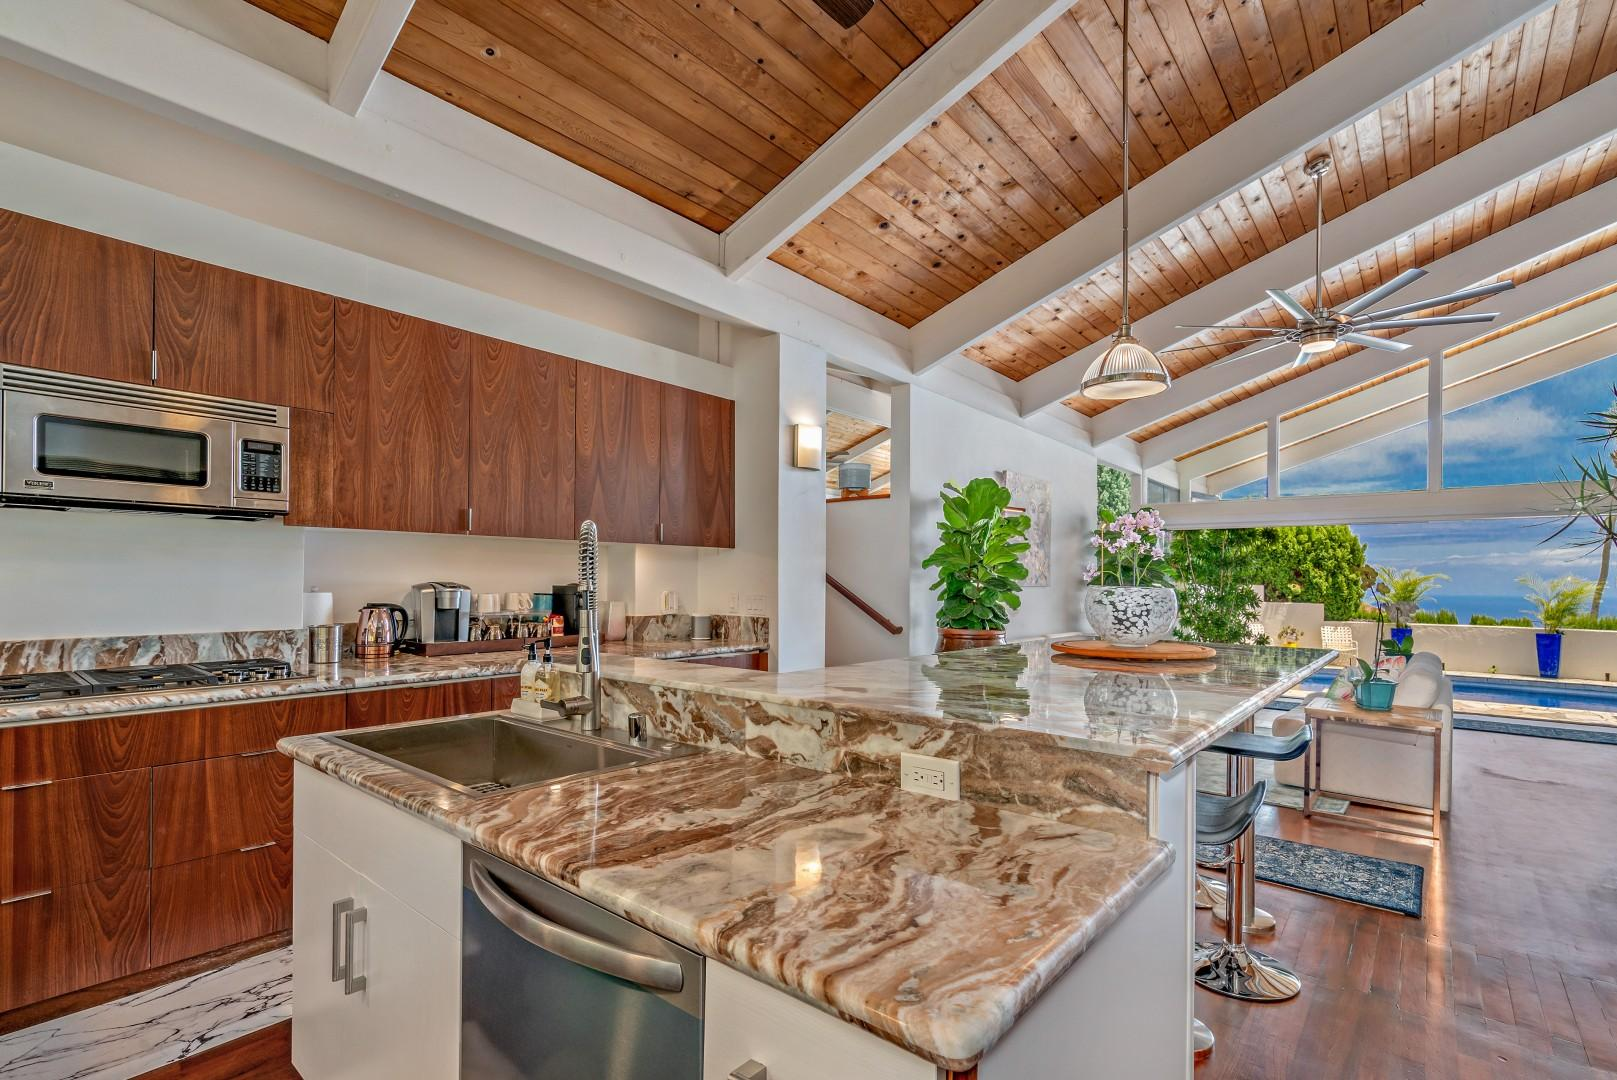 Ocean views from the kitchen.